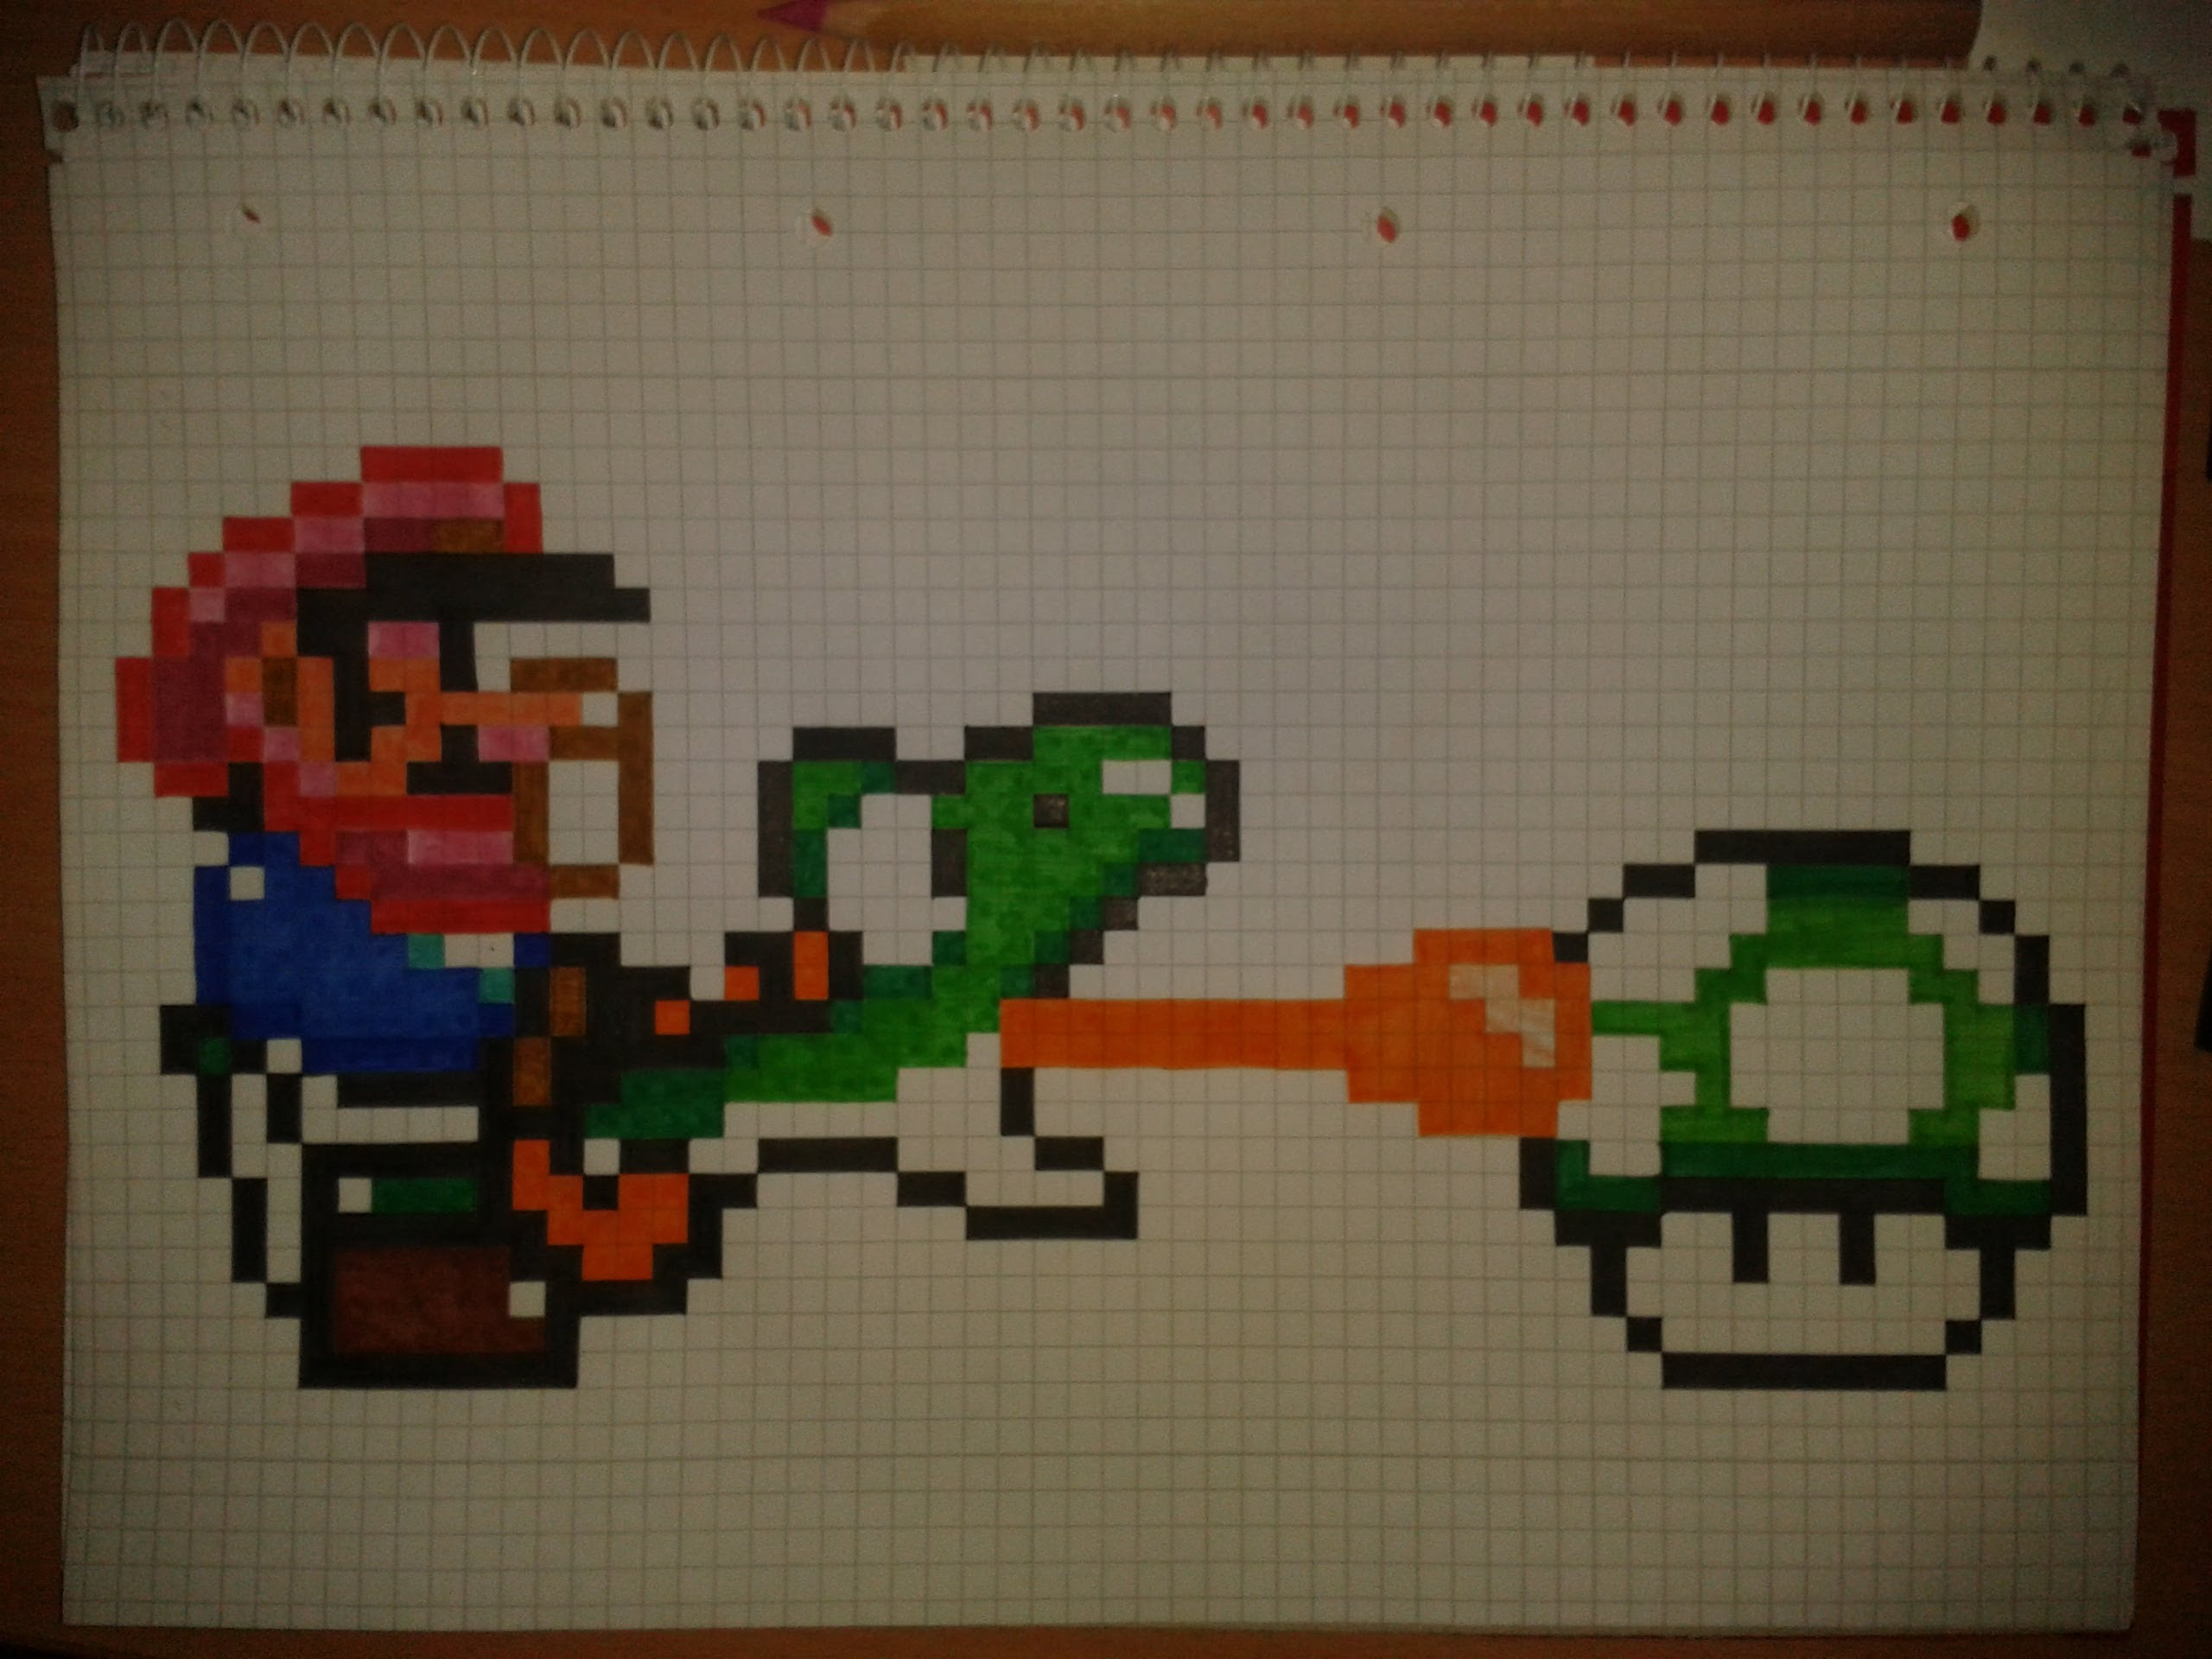 Drawn pixel art graph paper Mario and How pixel draw